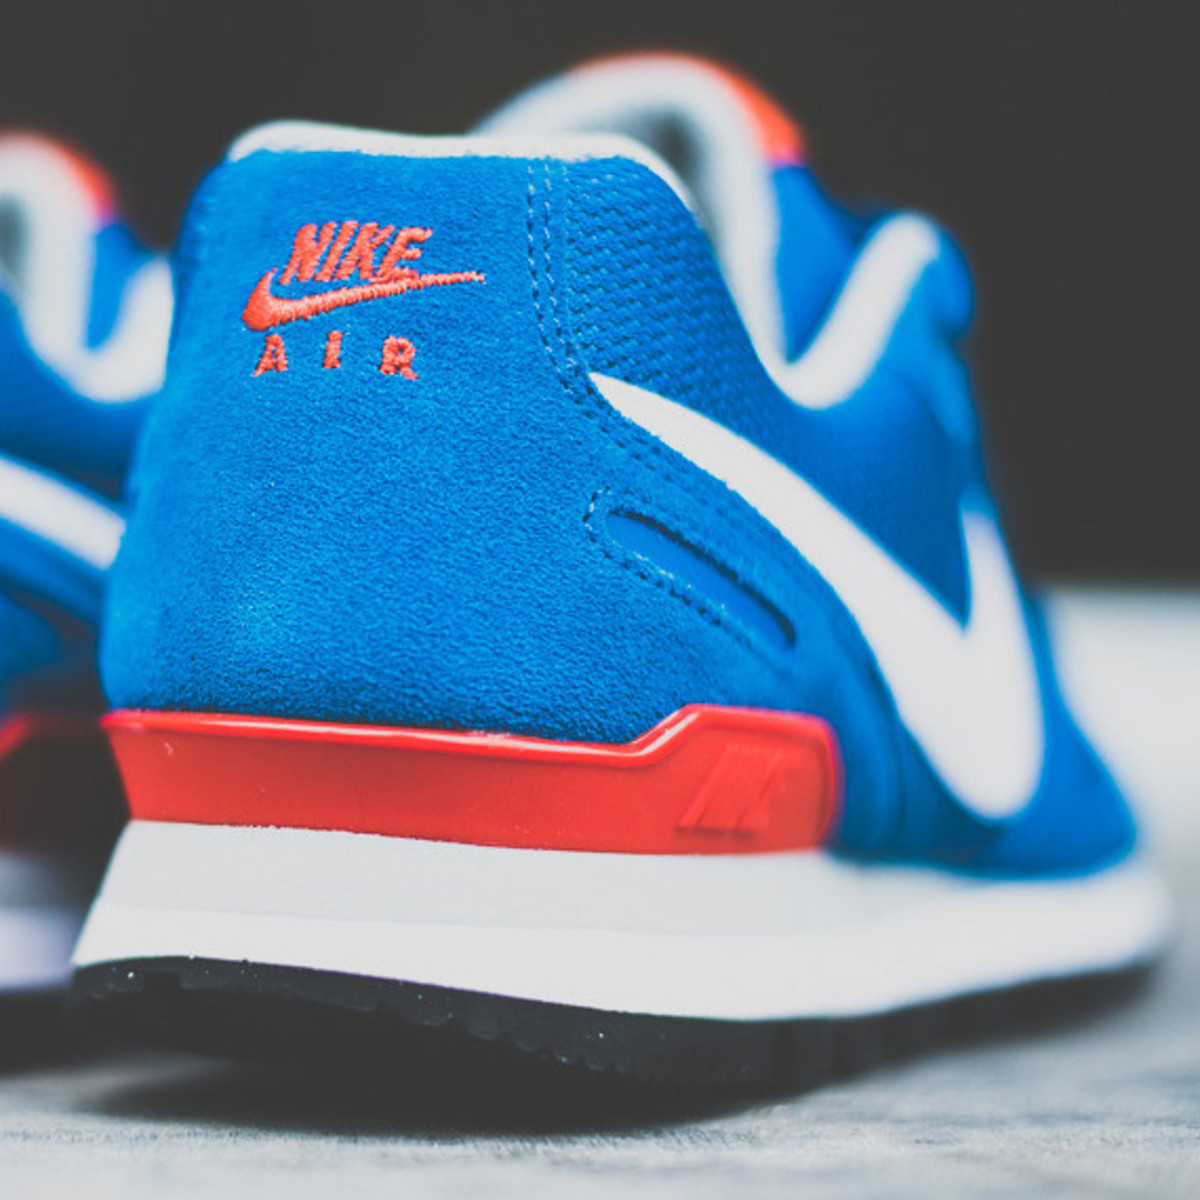 nike-air-waffle-trainer-military-blue-04a